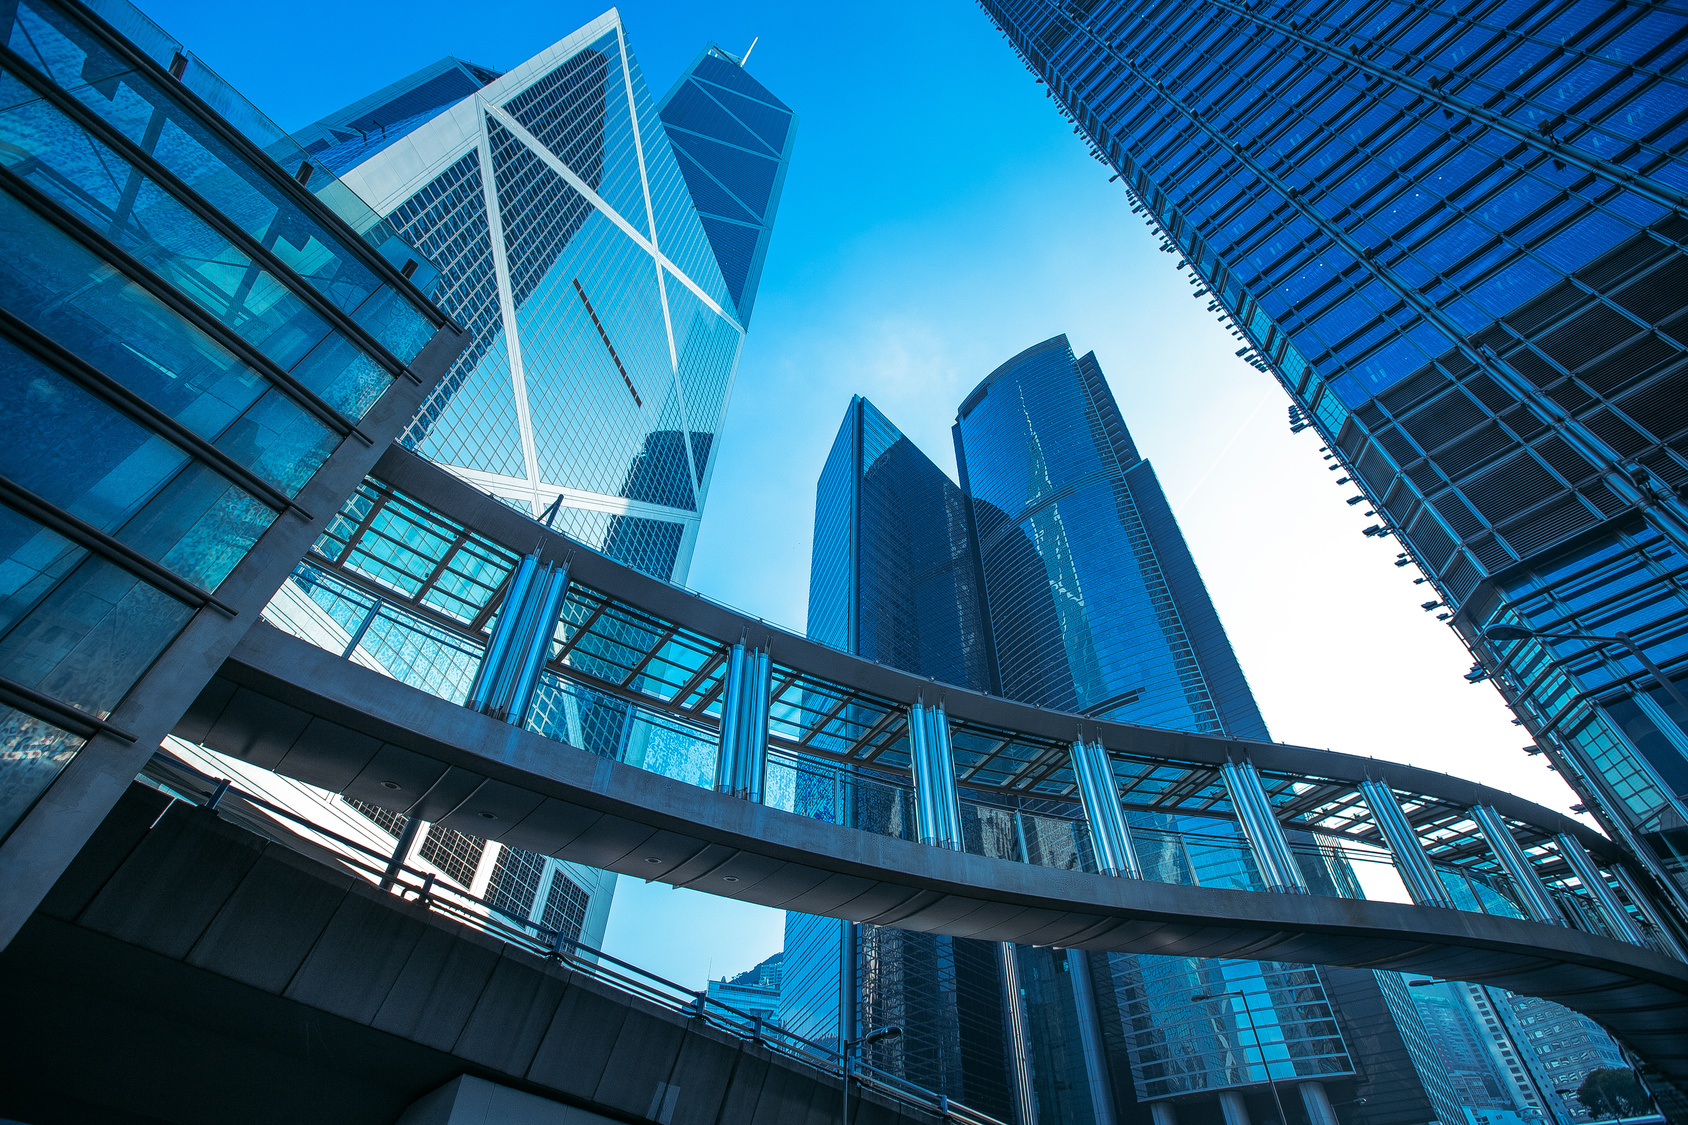 Italy's JV/Mergers & Acquisition laws get a makeover